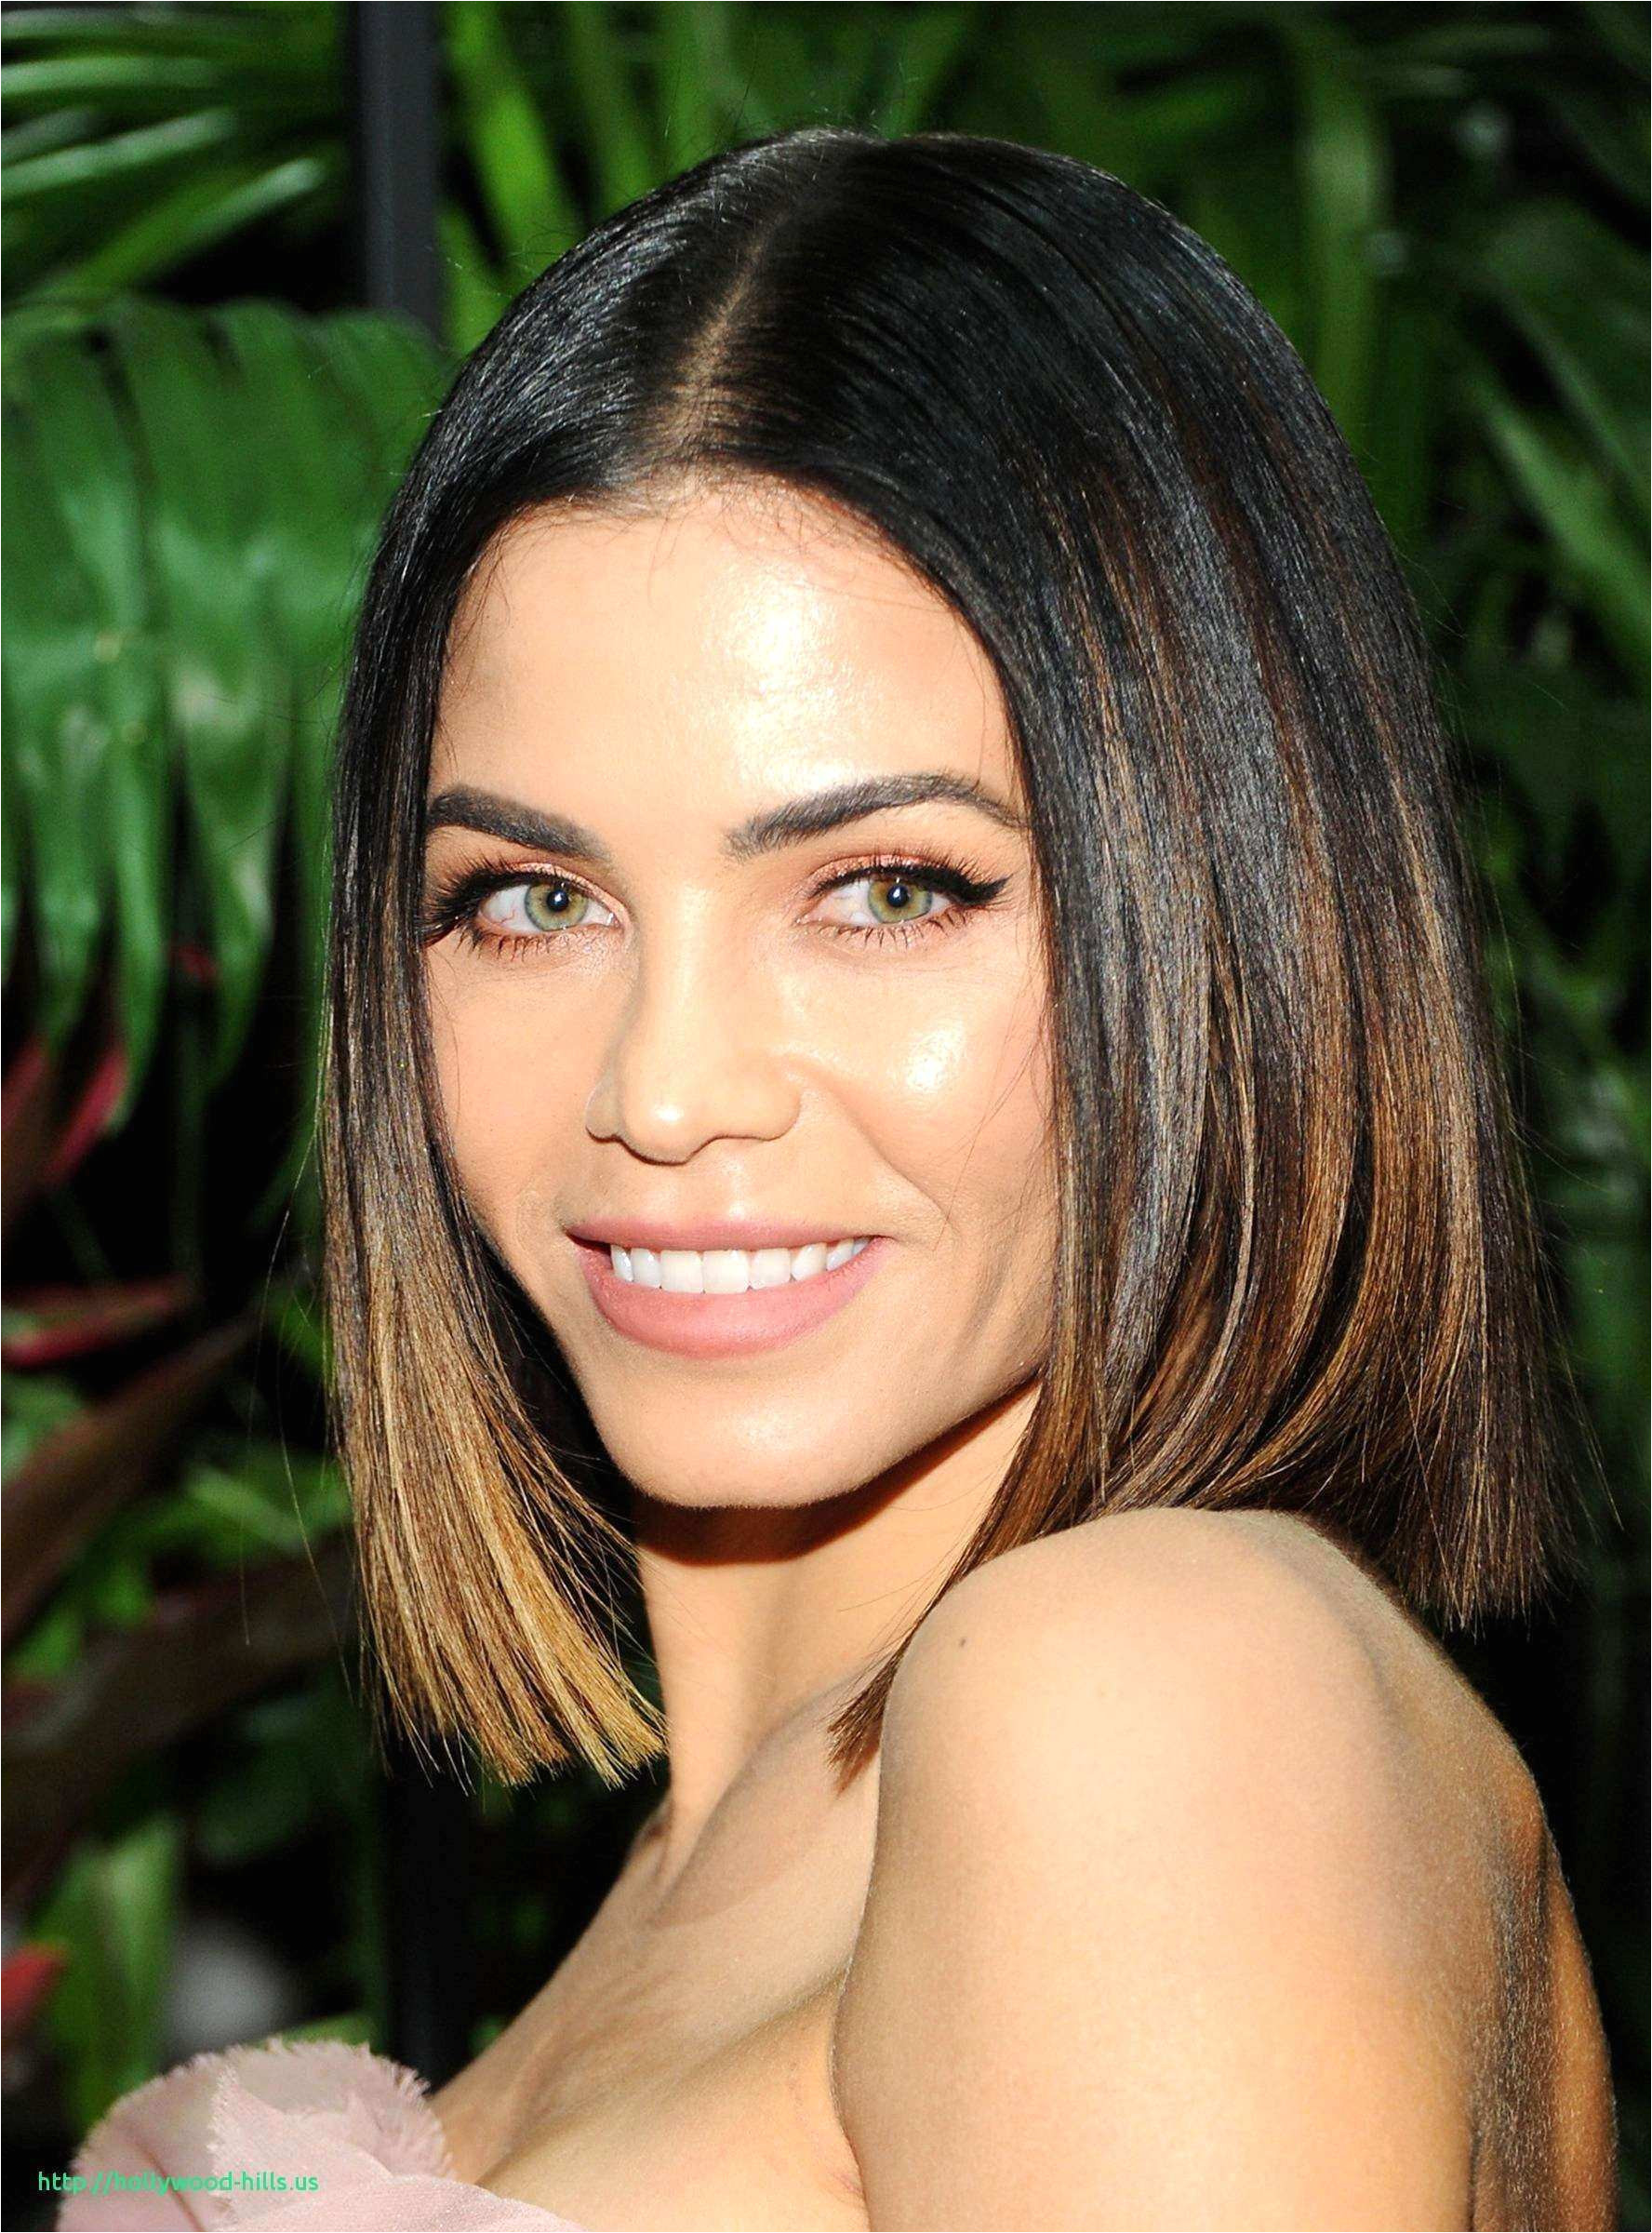 Girls Gallery Hairstyles for Straight Hair and Long Face Related Post